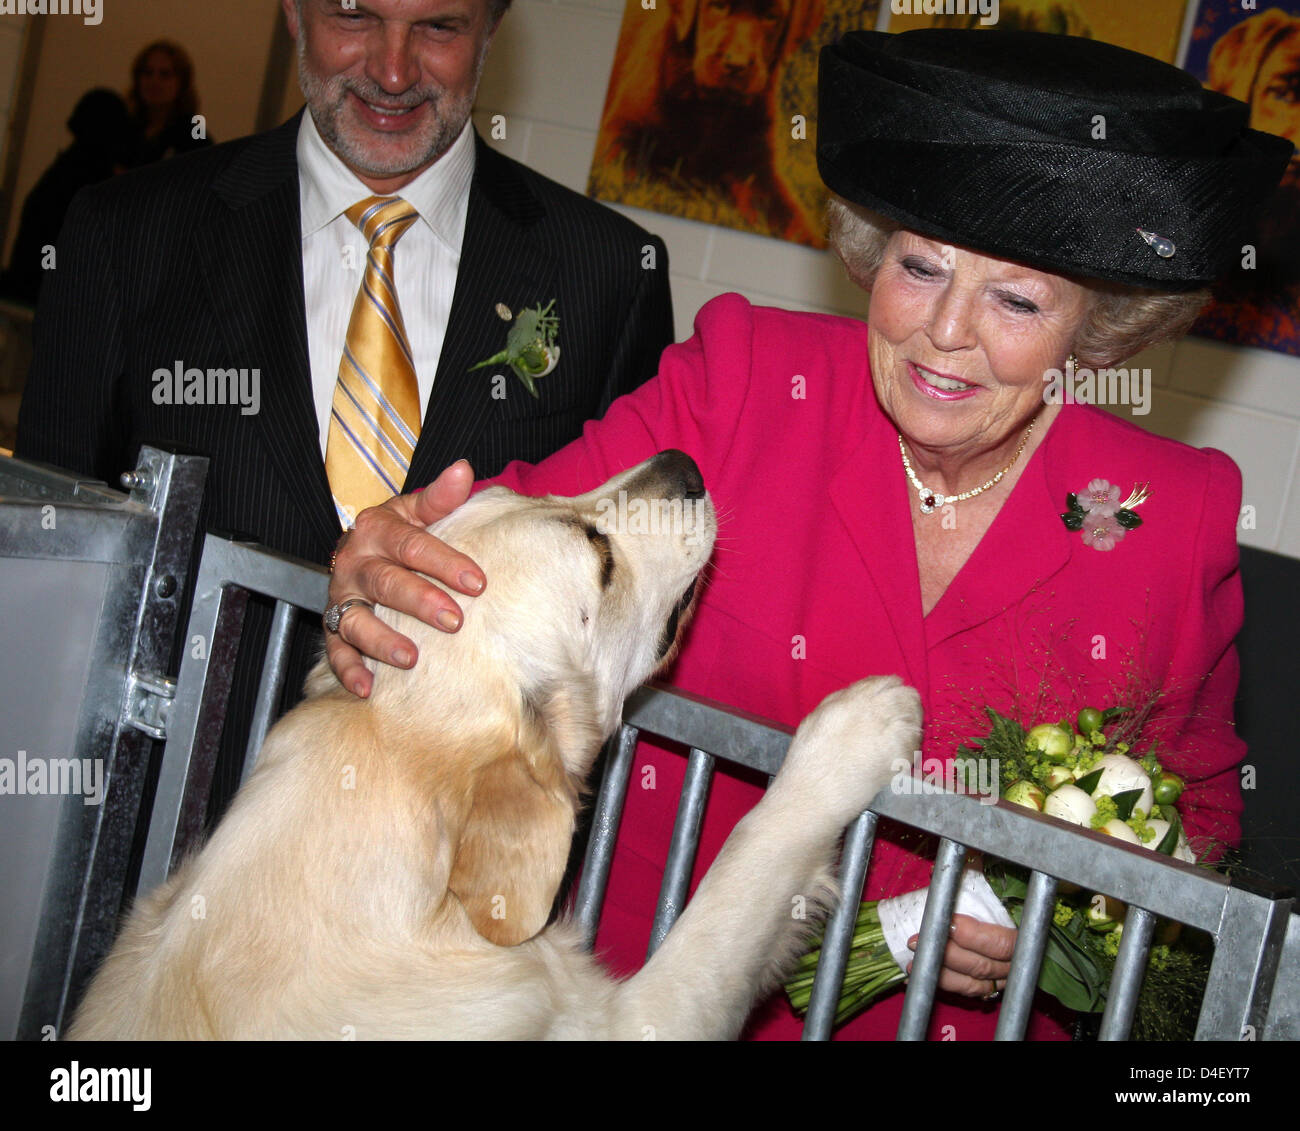 Queen Beatrix af the Netherlands attends the opening of the foundation Hulphond (Help Dogs) in Herpen, Netherlands, - Stock Image